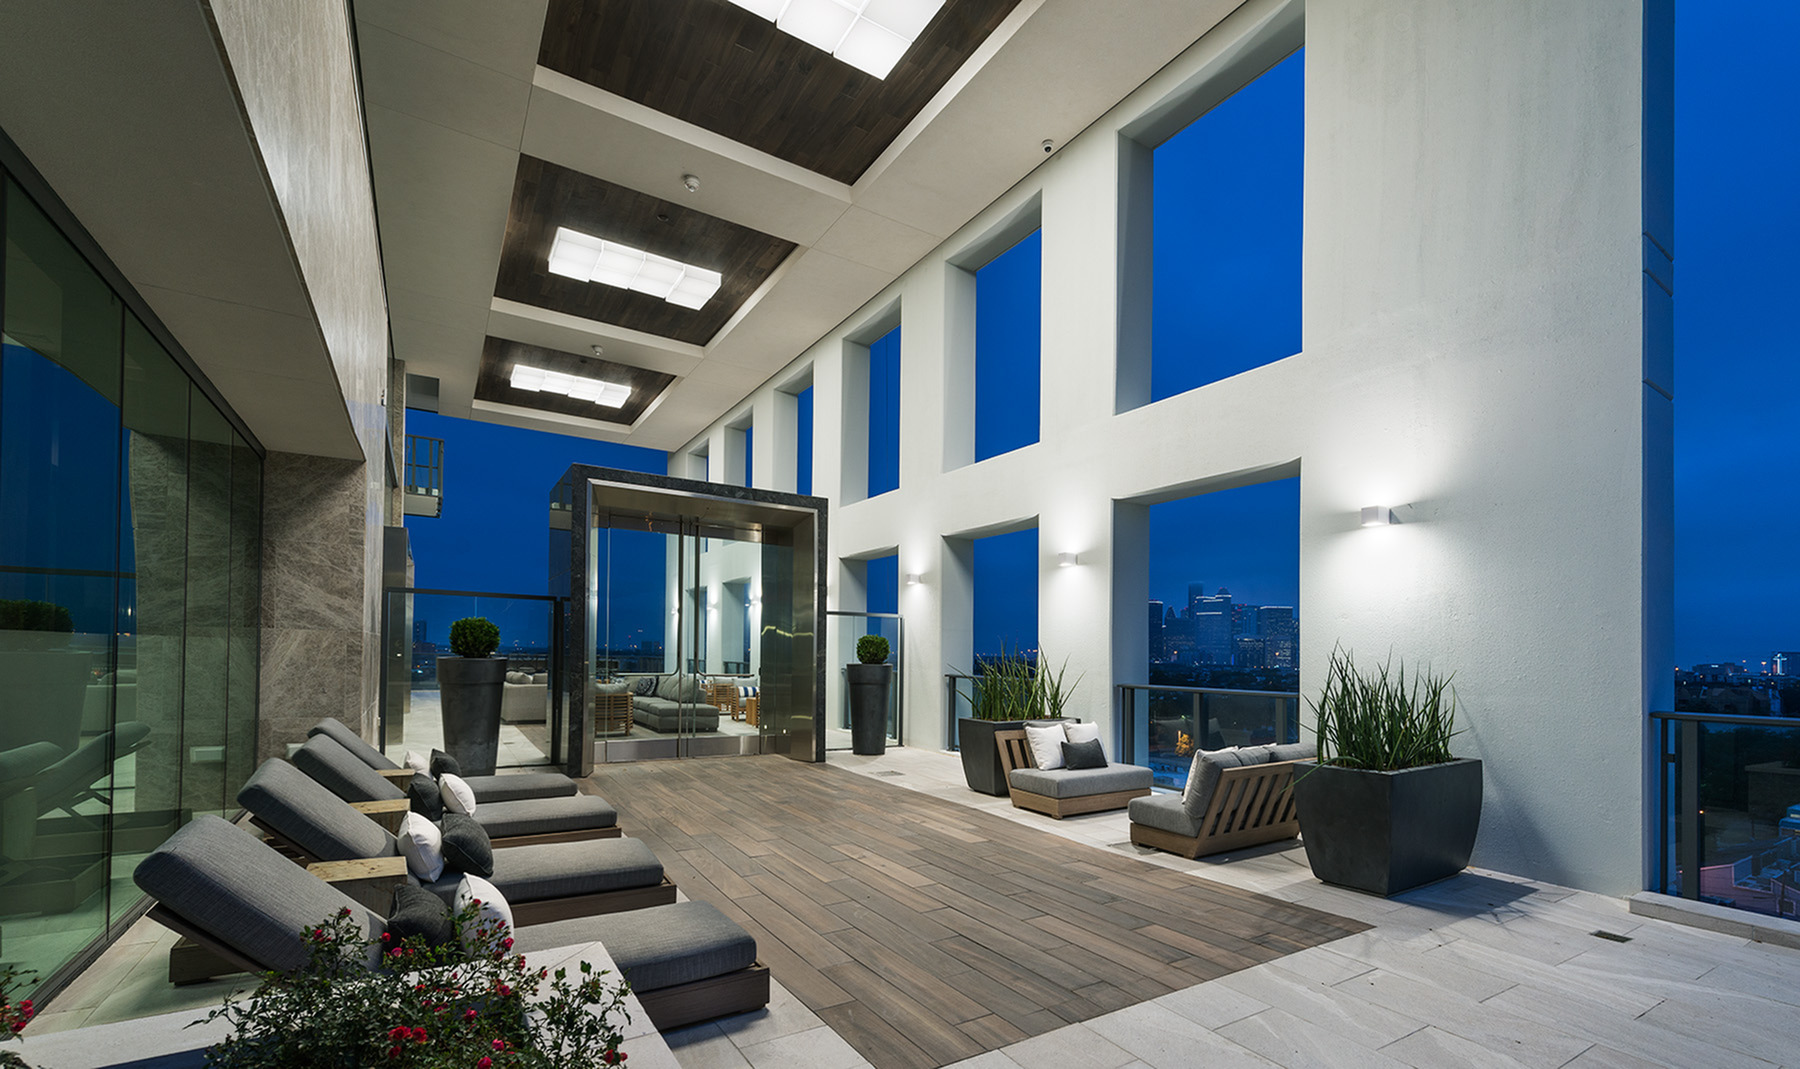 Image of Open-air loggia with dining areas and skyline views for Hanover Montrose